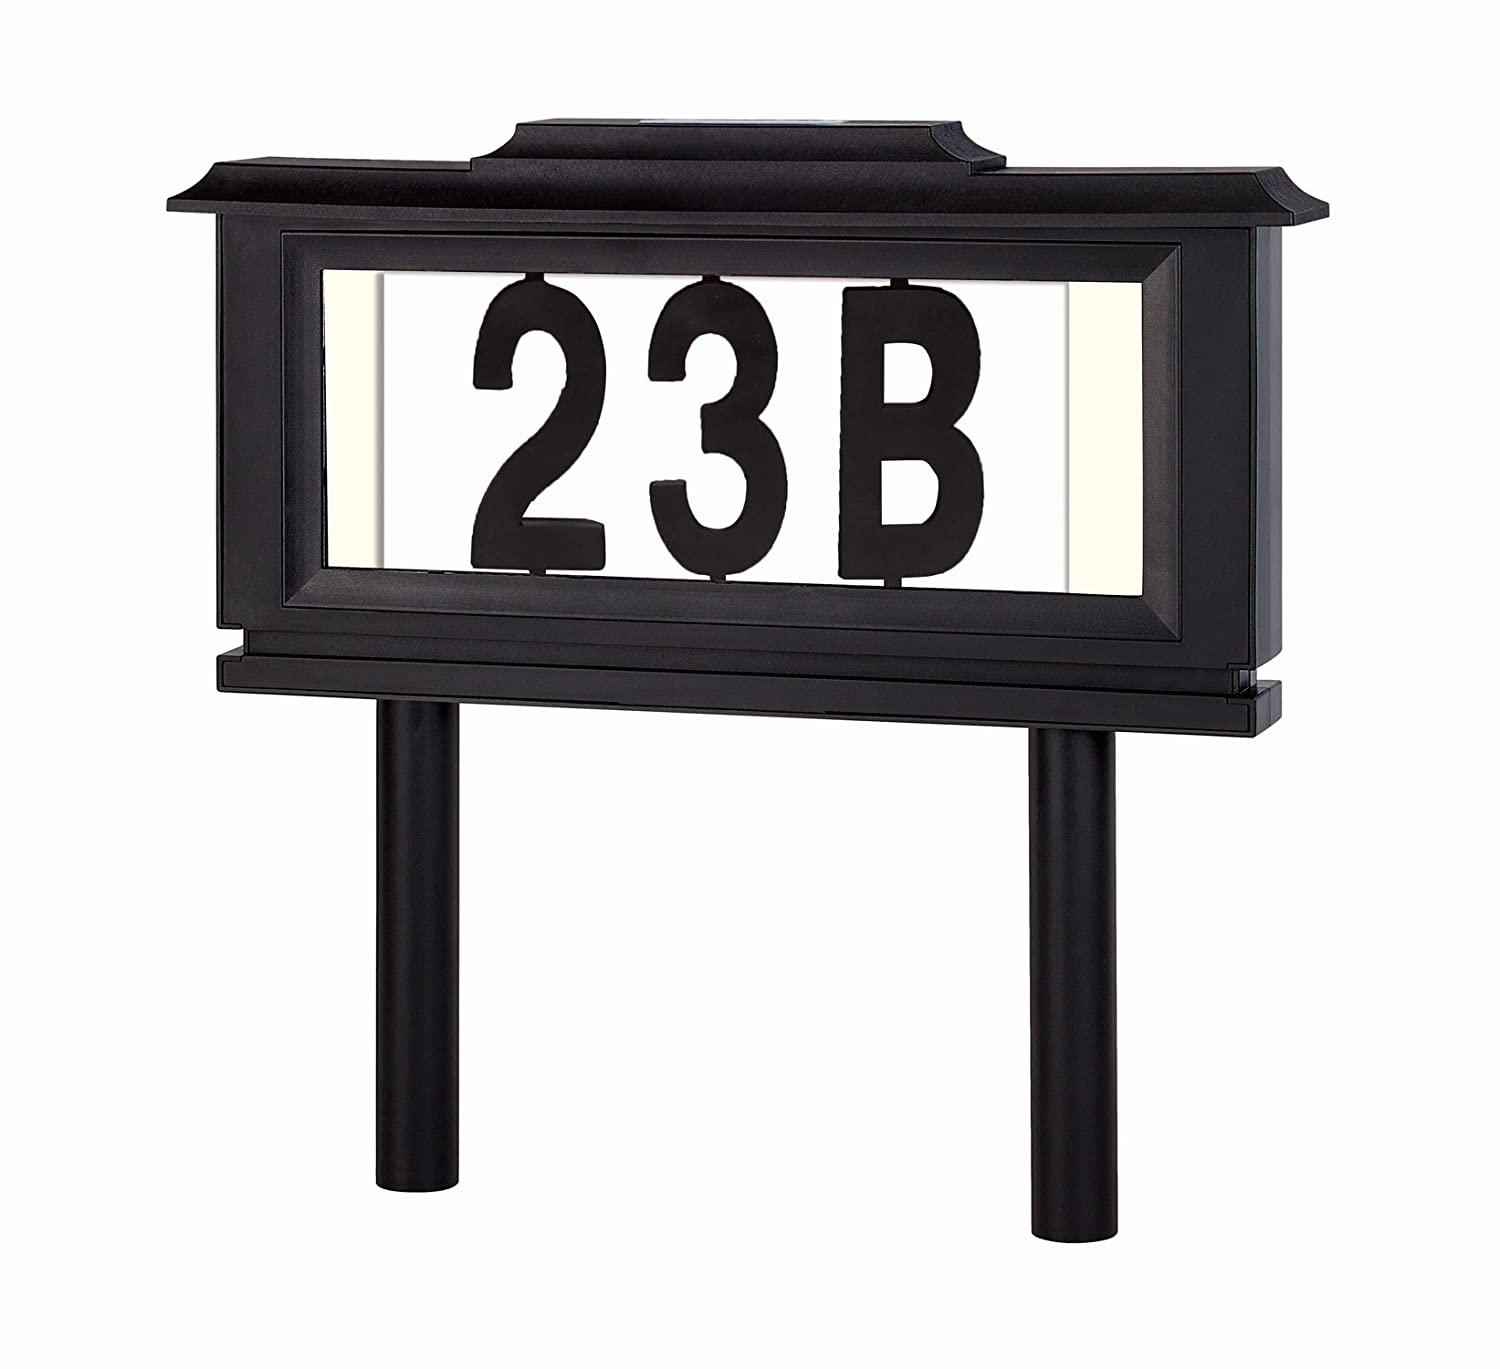 House Mailbox Numbers Reflective Sign – Address Plaques Door Numbers for Houses - Solar Street Address Led Light Signs for Home or Yard – Auto ON at Night – Off at Daylight – No Electric Power Needed Perfect Life Ideas